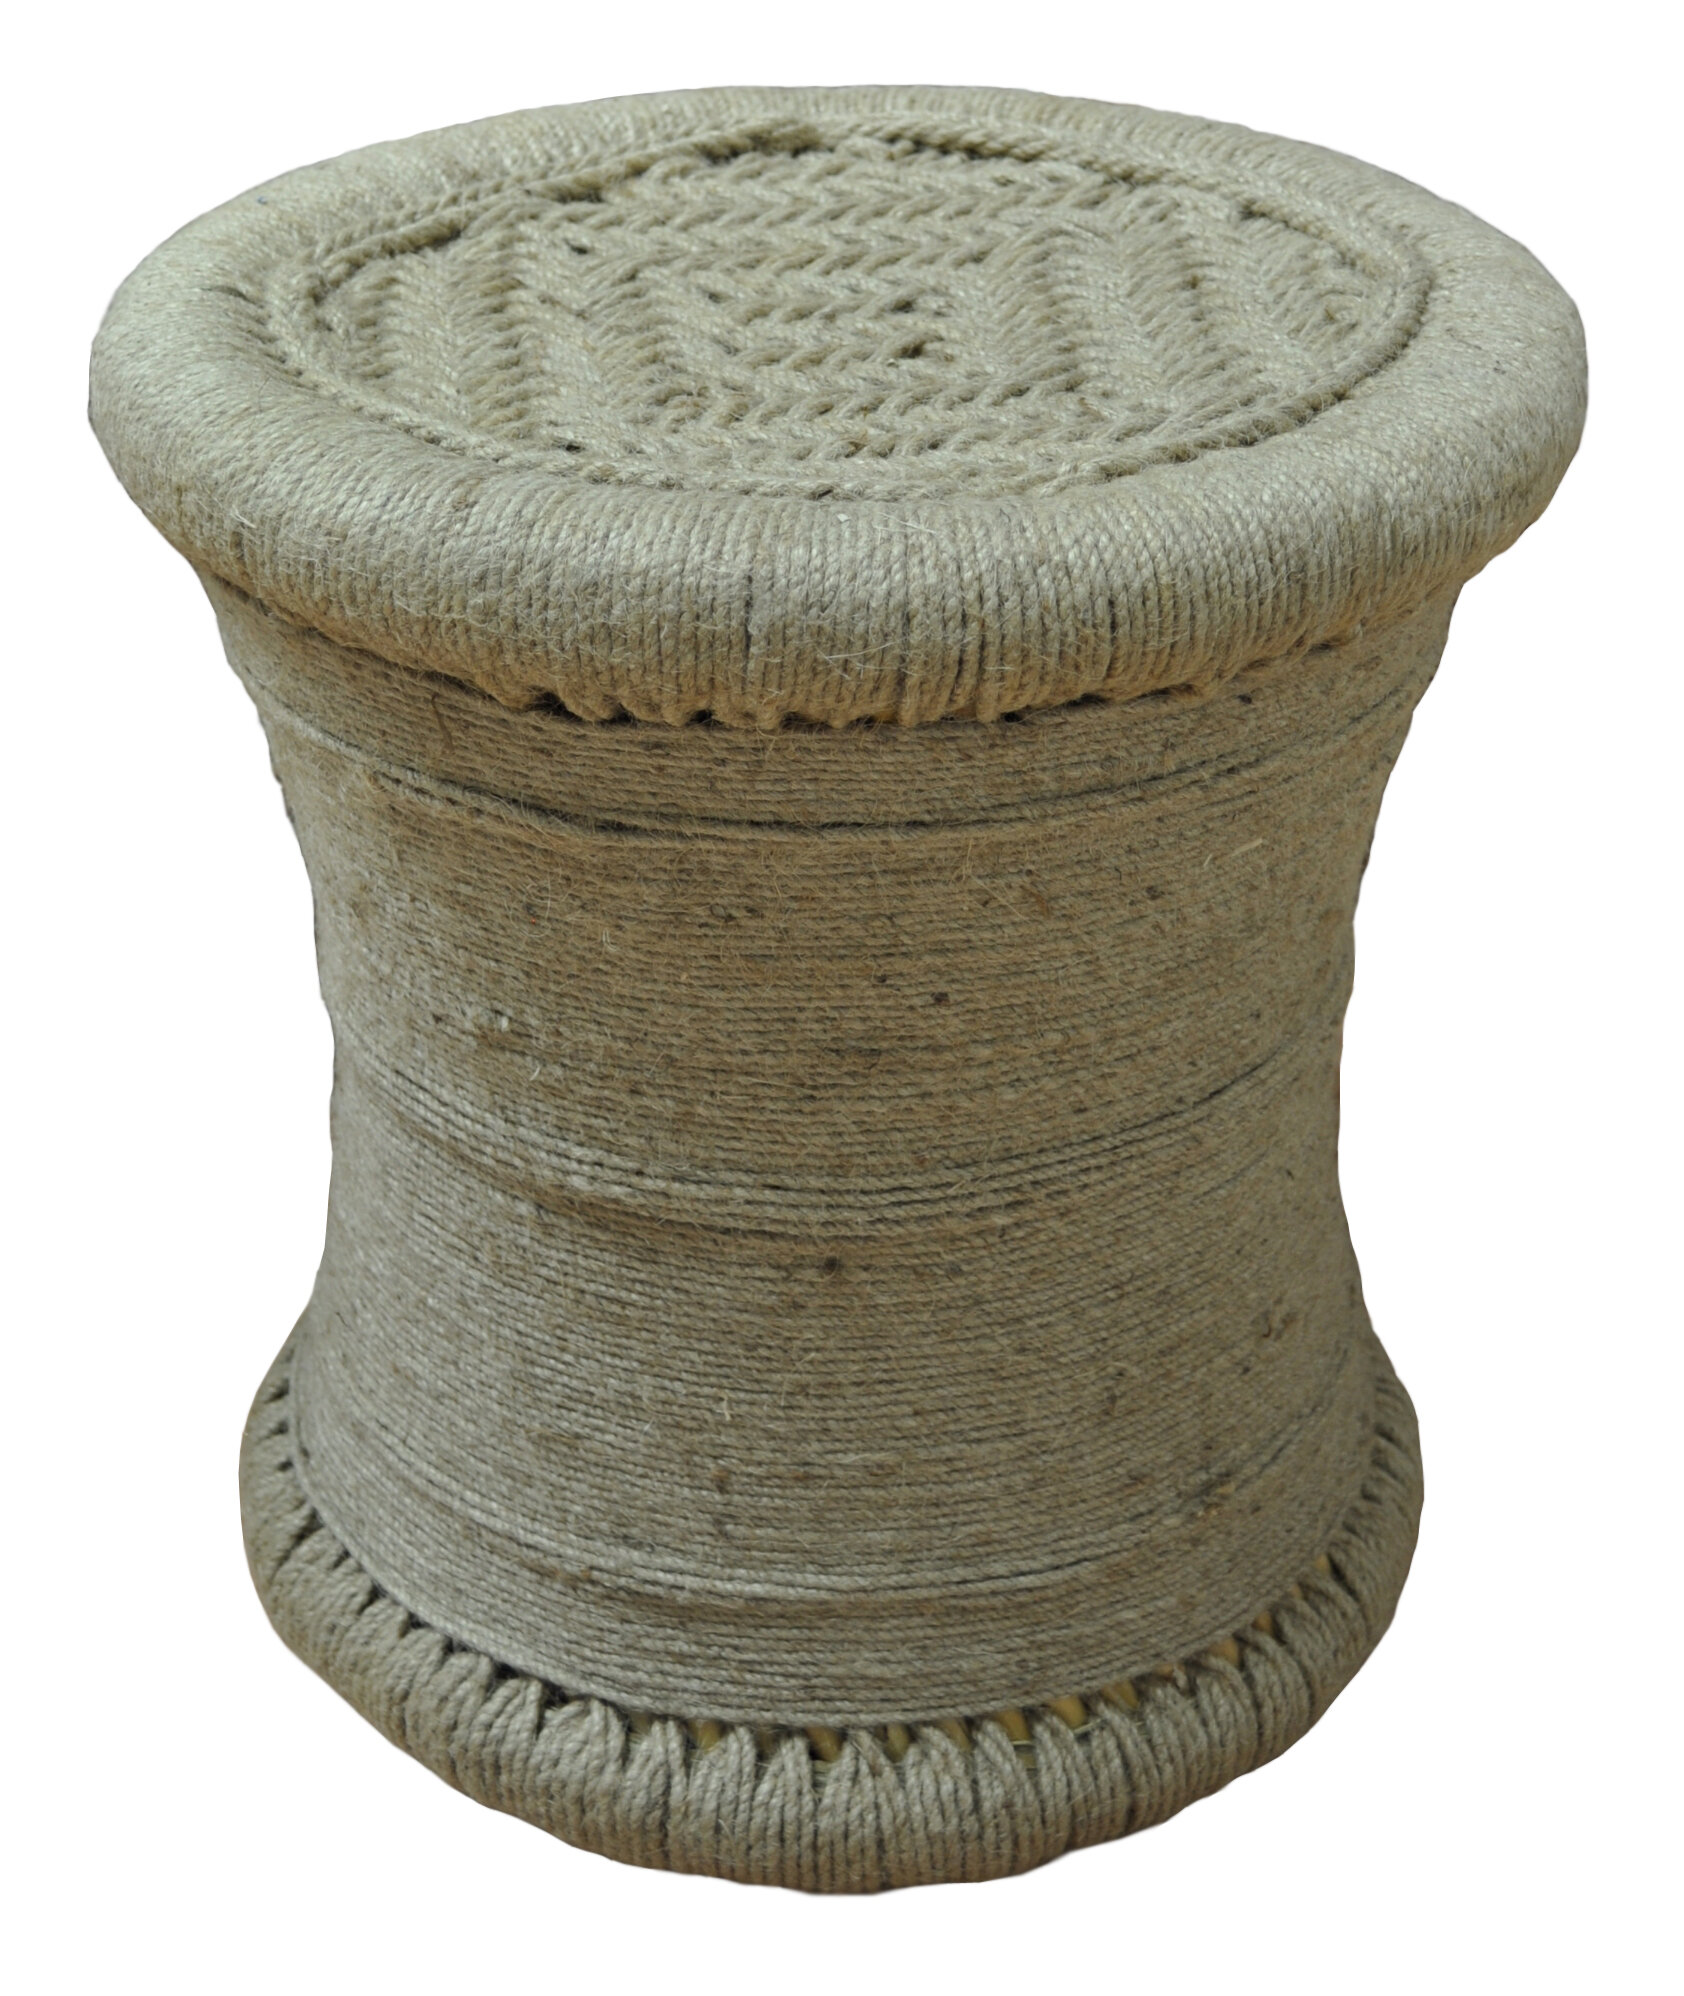 Bungalow Rose Ouindo All Wrapped Jute Accent Stool   Wayfair